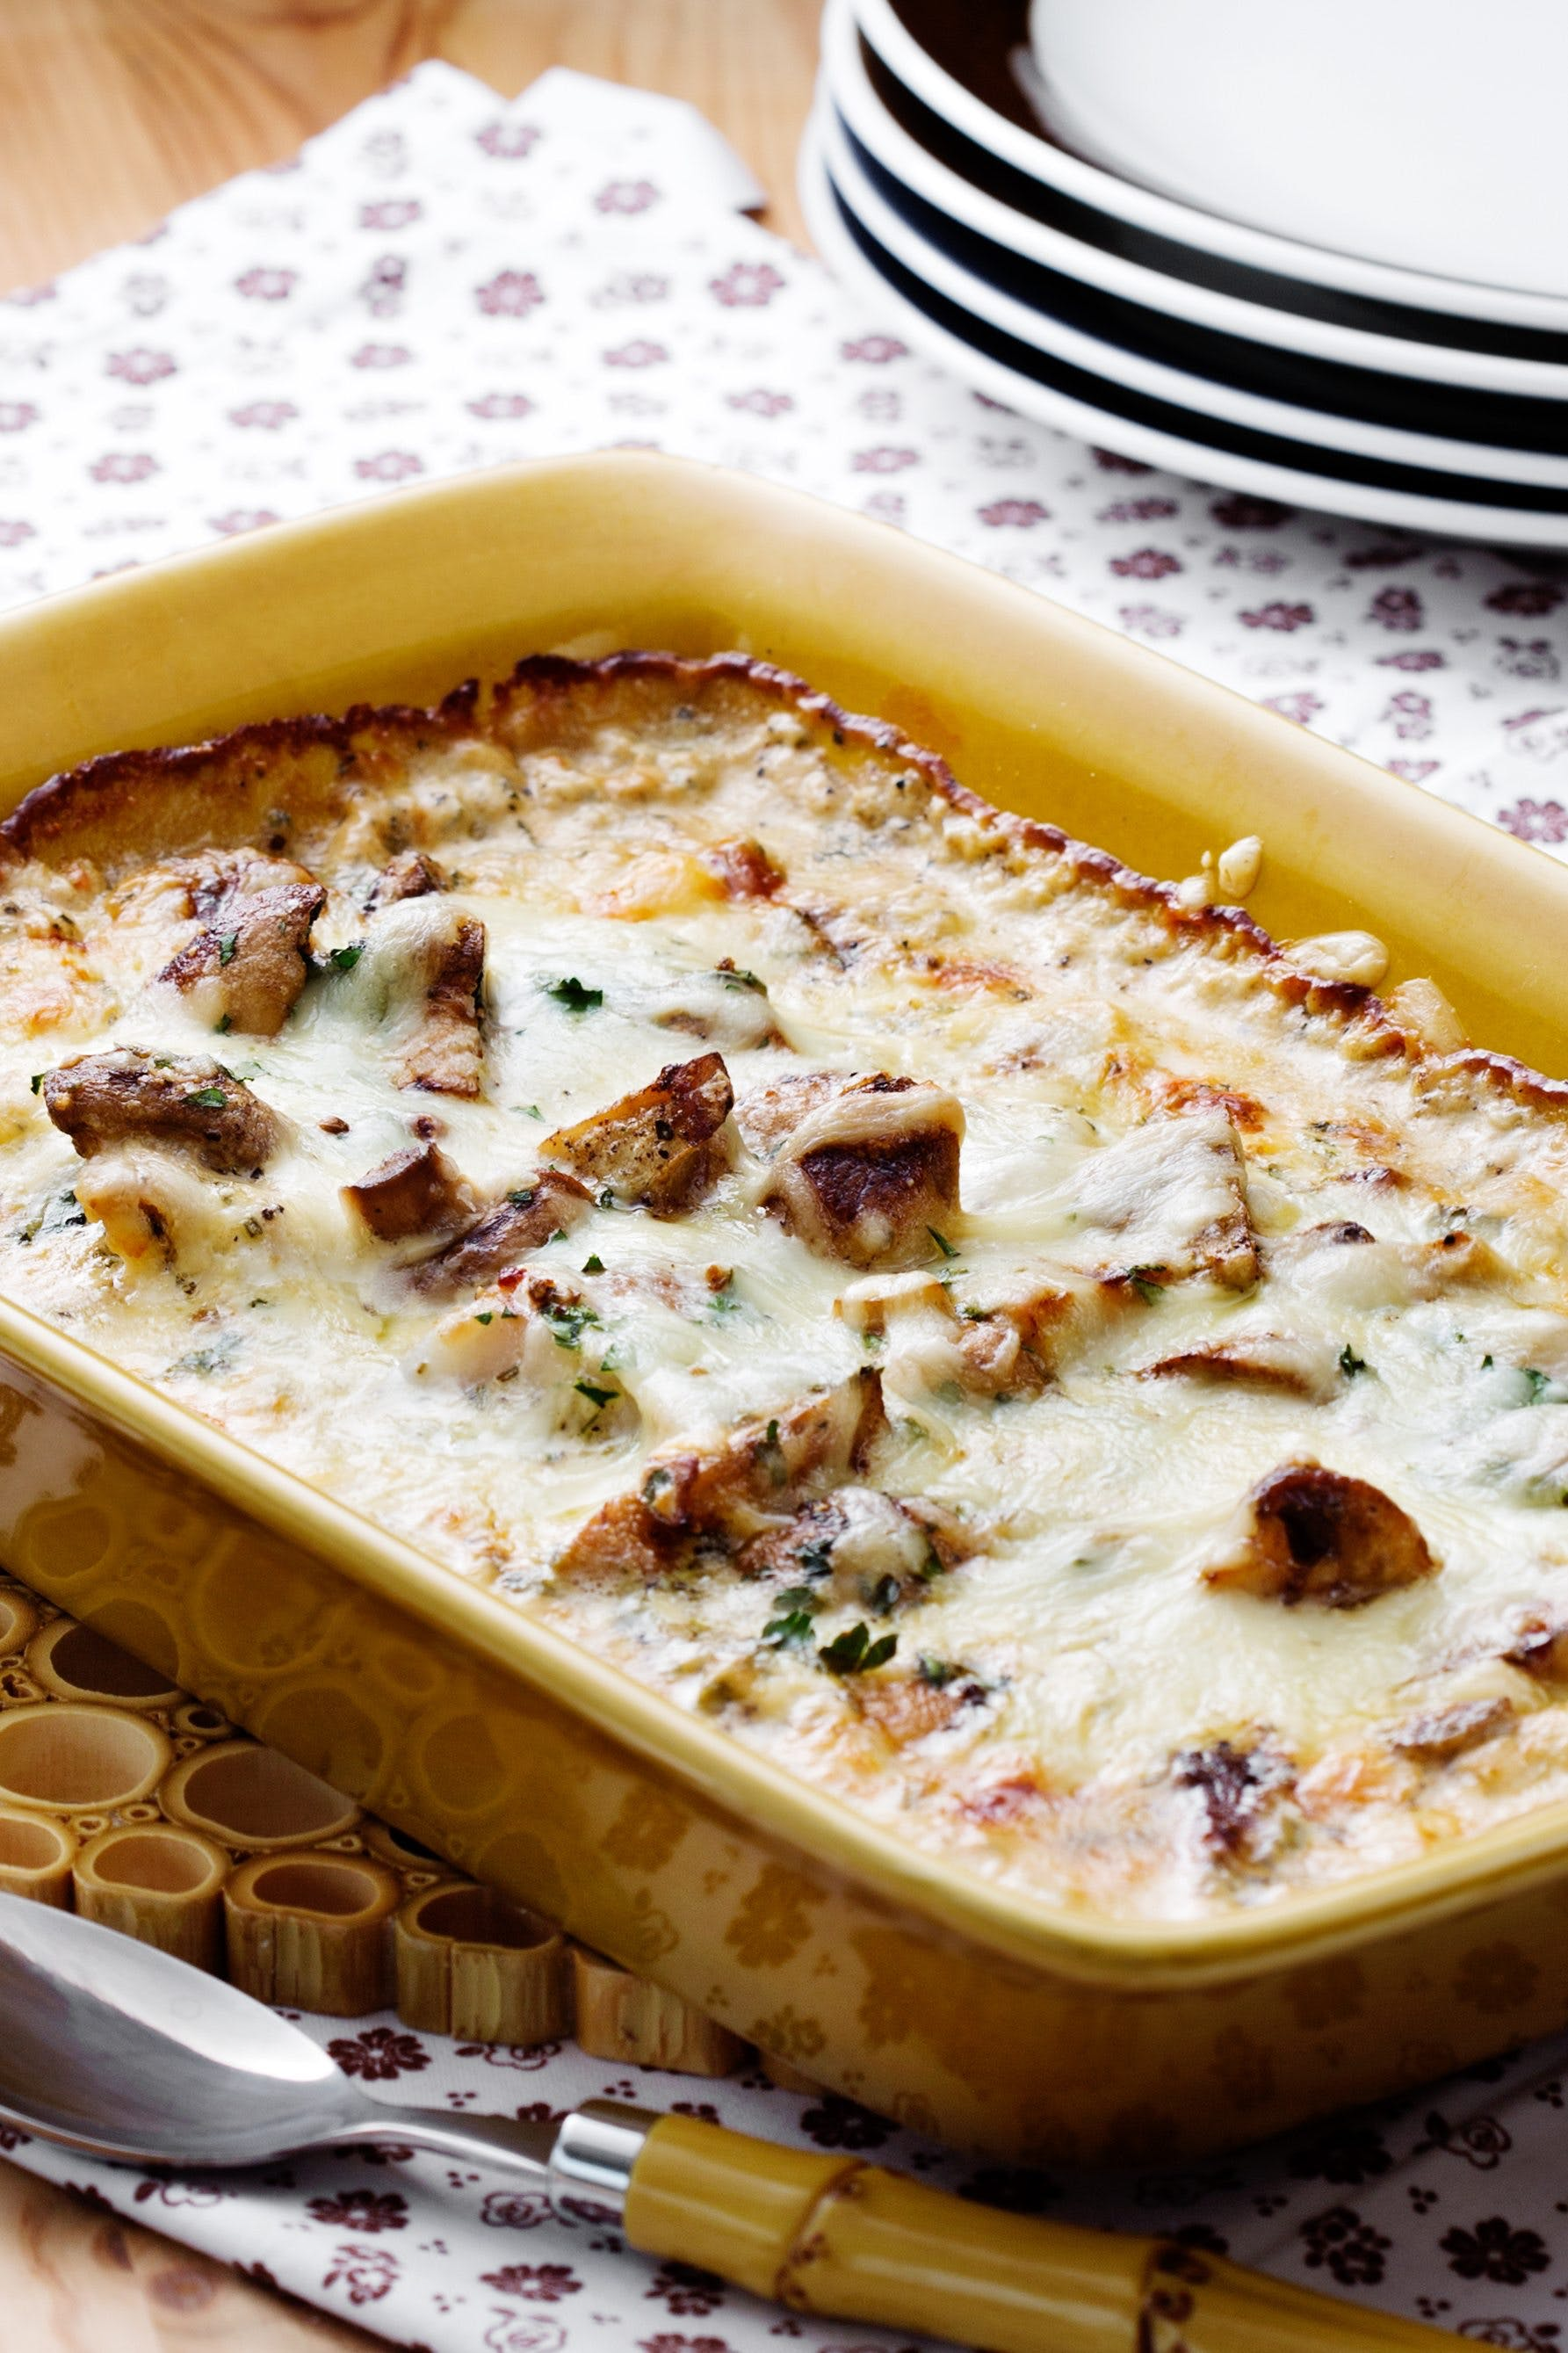 Keto fish casserole with mushrooms and French mustard